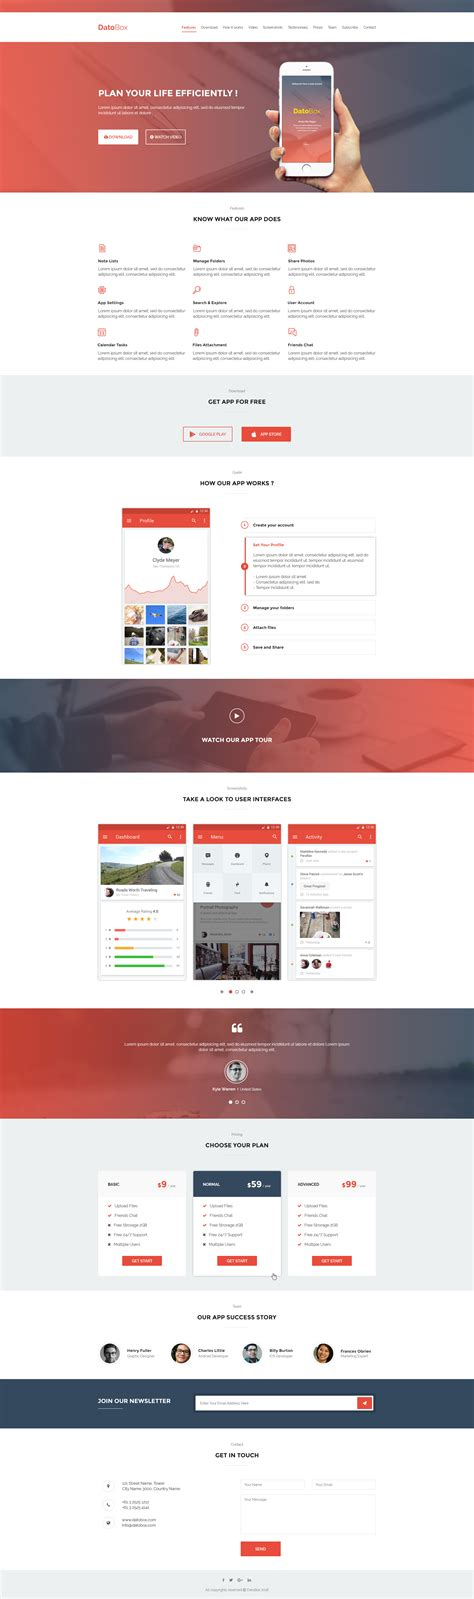 mobile landing page templates datobox mobile app landing page template by ghssalem